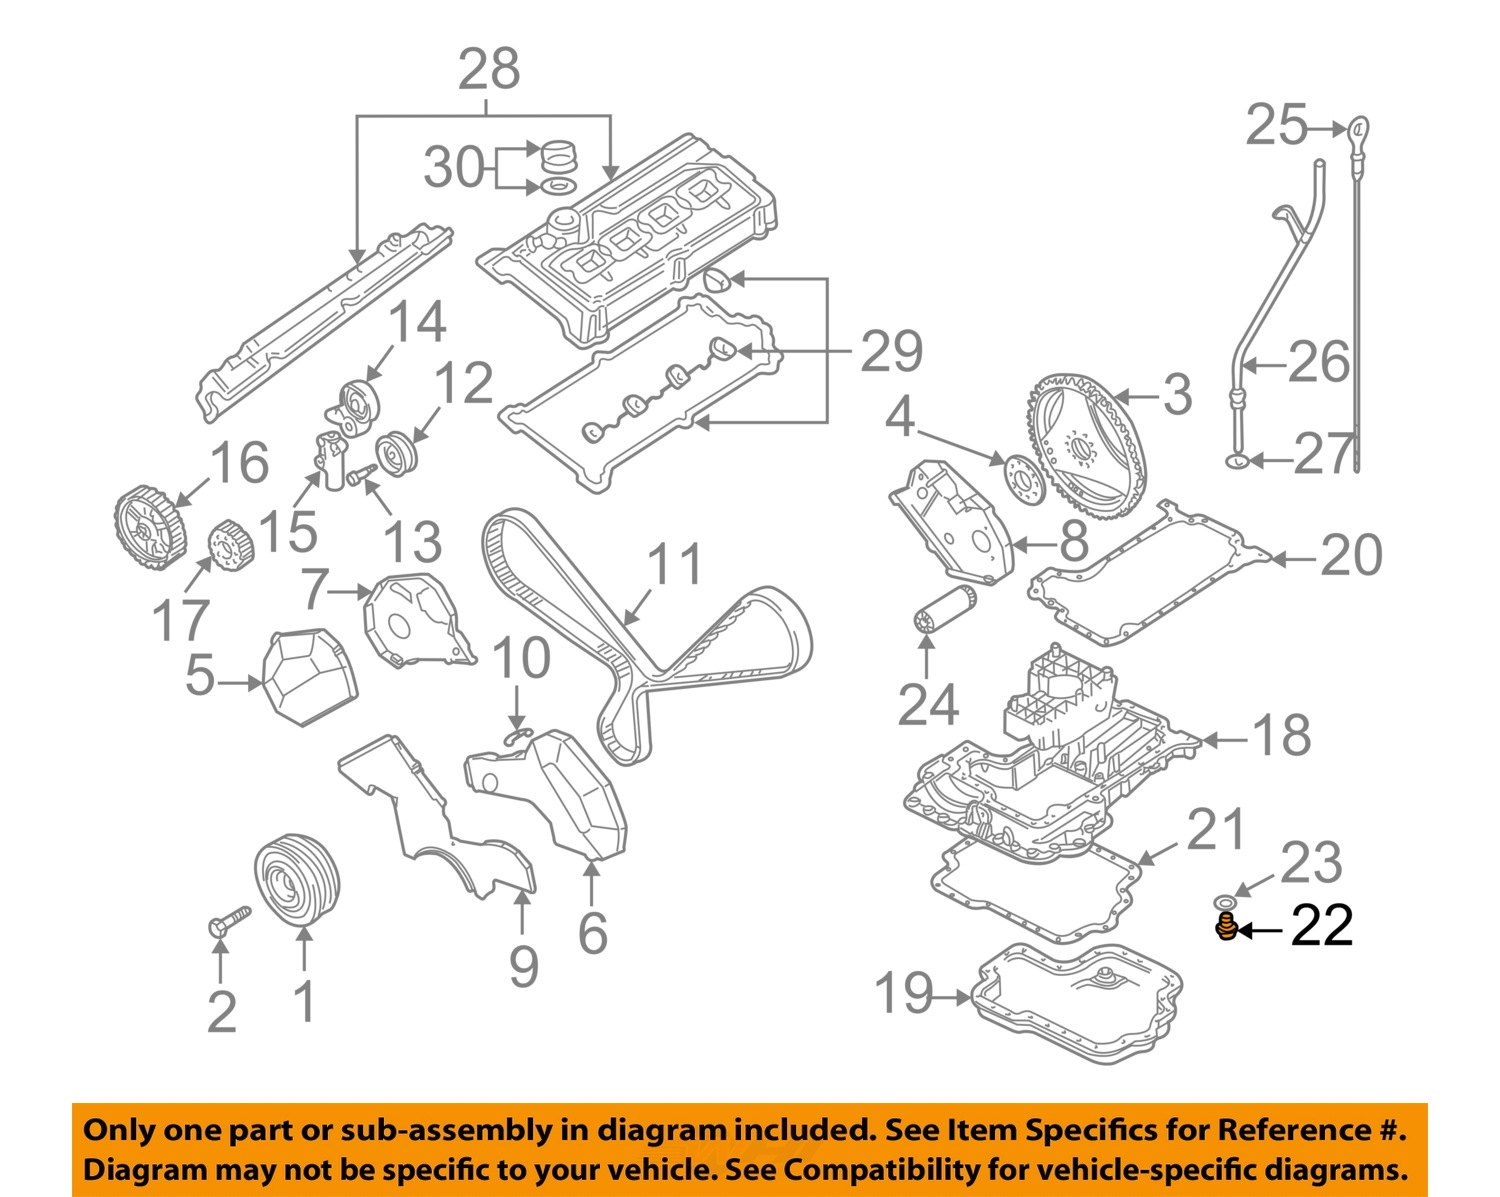 2004 Audi S4 Engine Diagram | Wiring Library